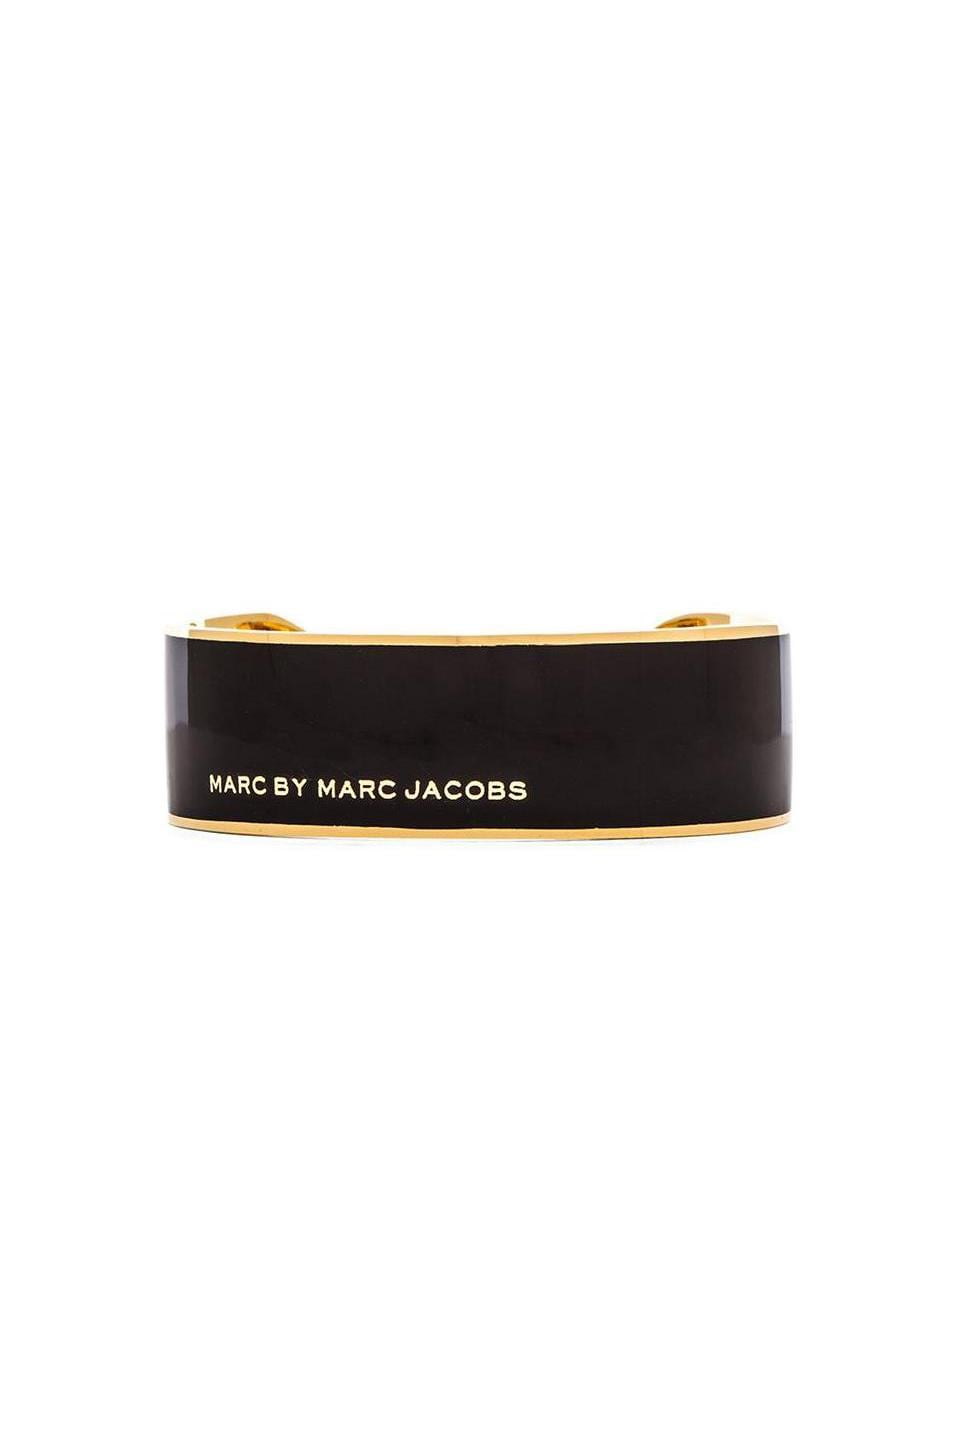 Marc by Marc Jacobs Modern Marc Logo Modern Cuff in Black & Oro